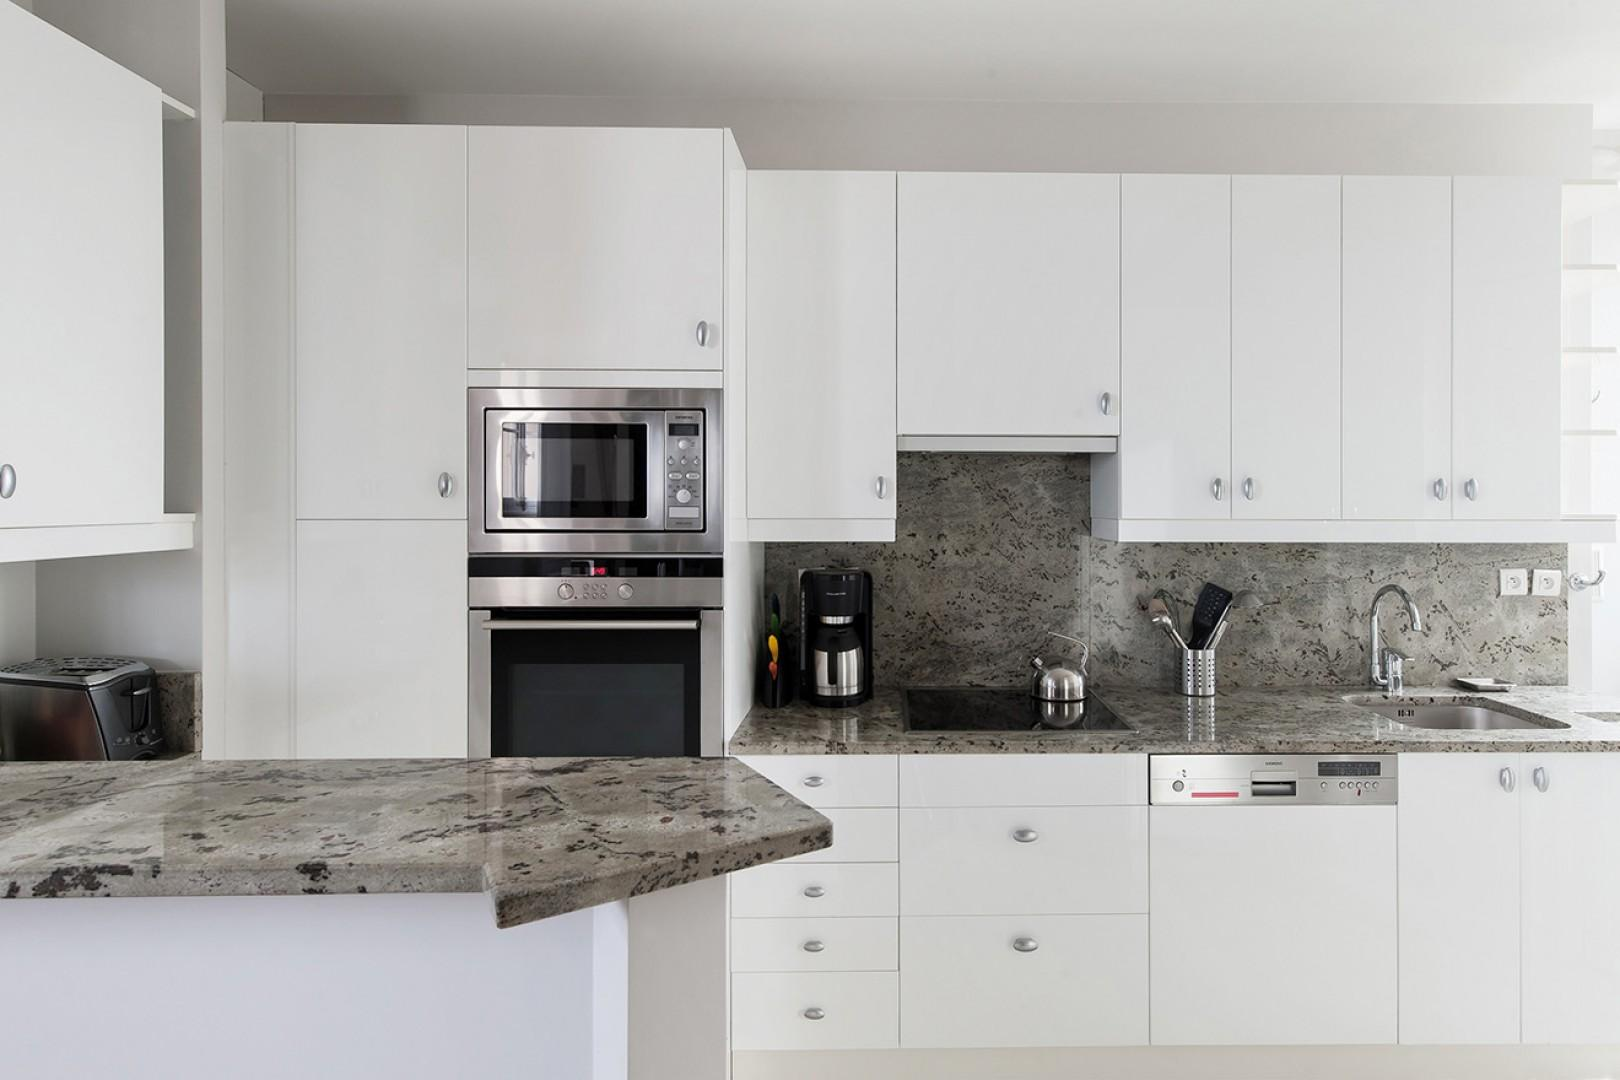 Enjoy the fully equipped kitchen with modern appliances.